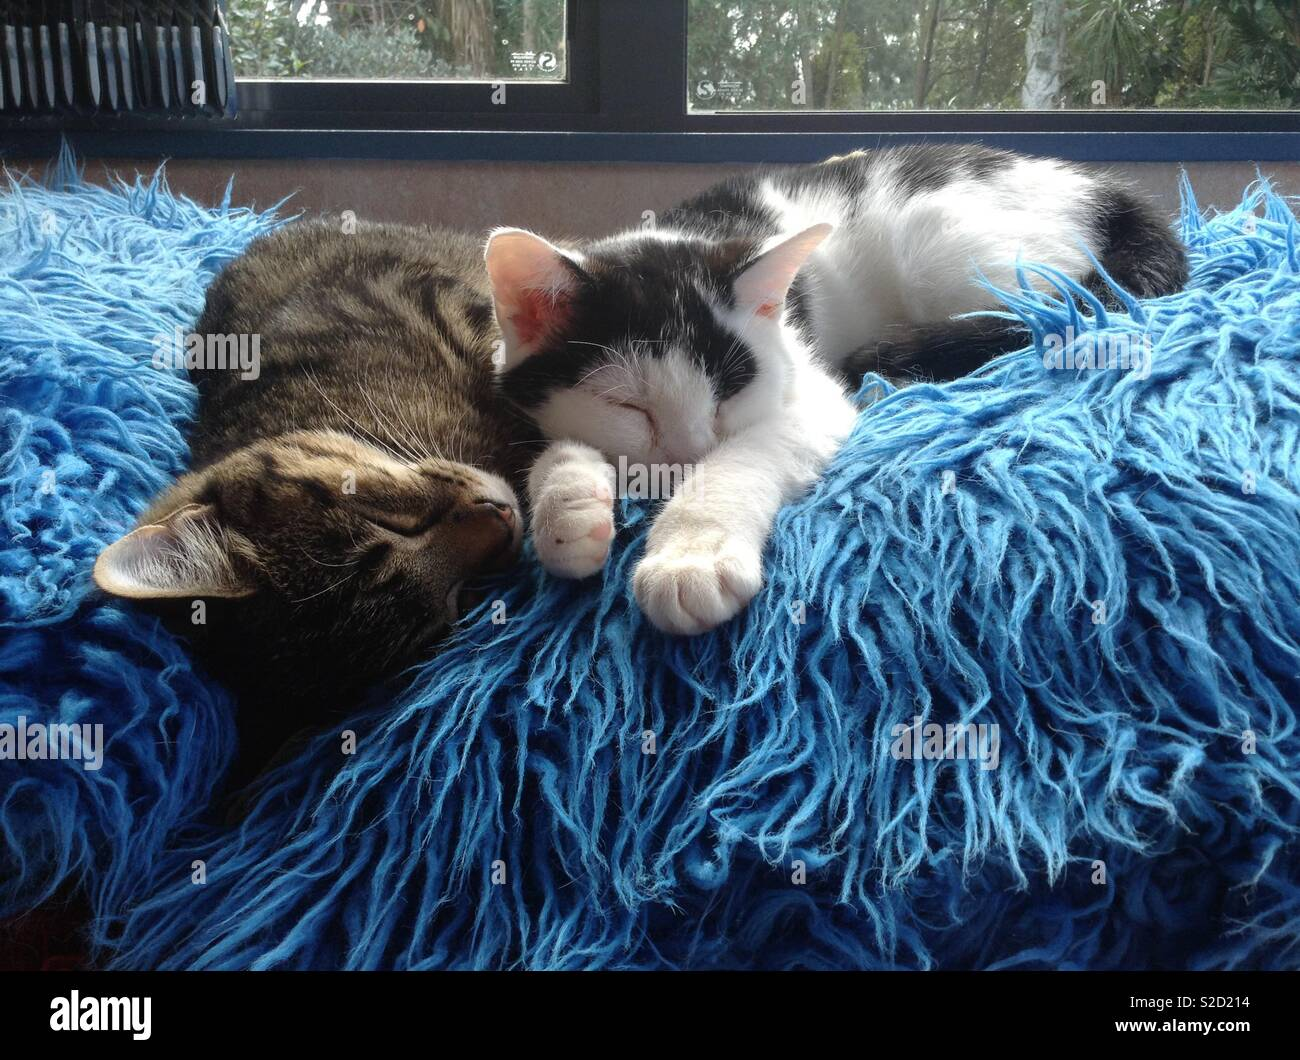 Brother & sister in deep sleep - Stock Image